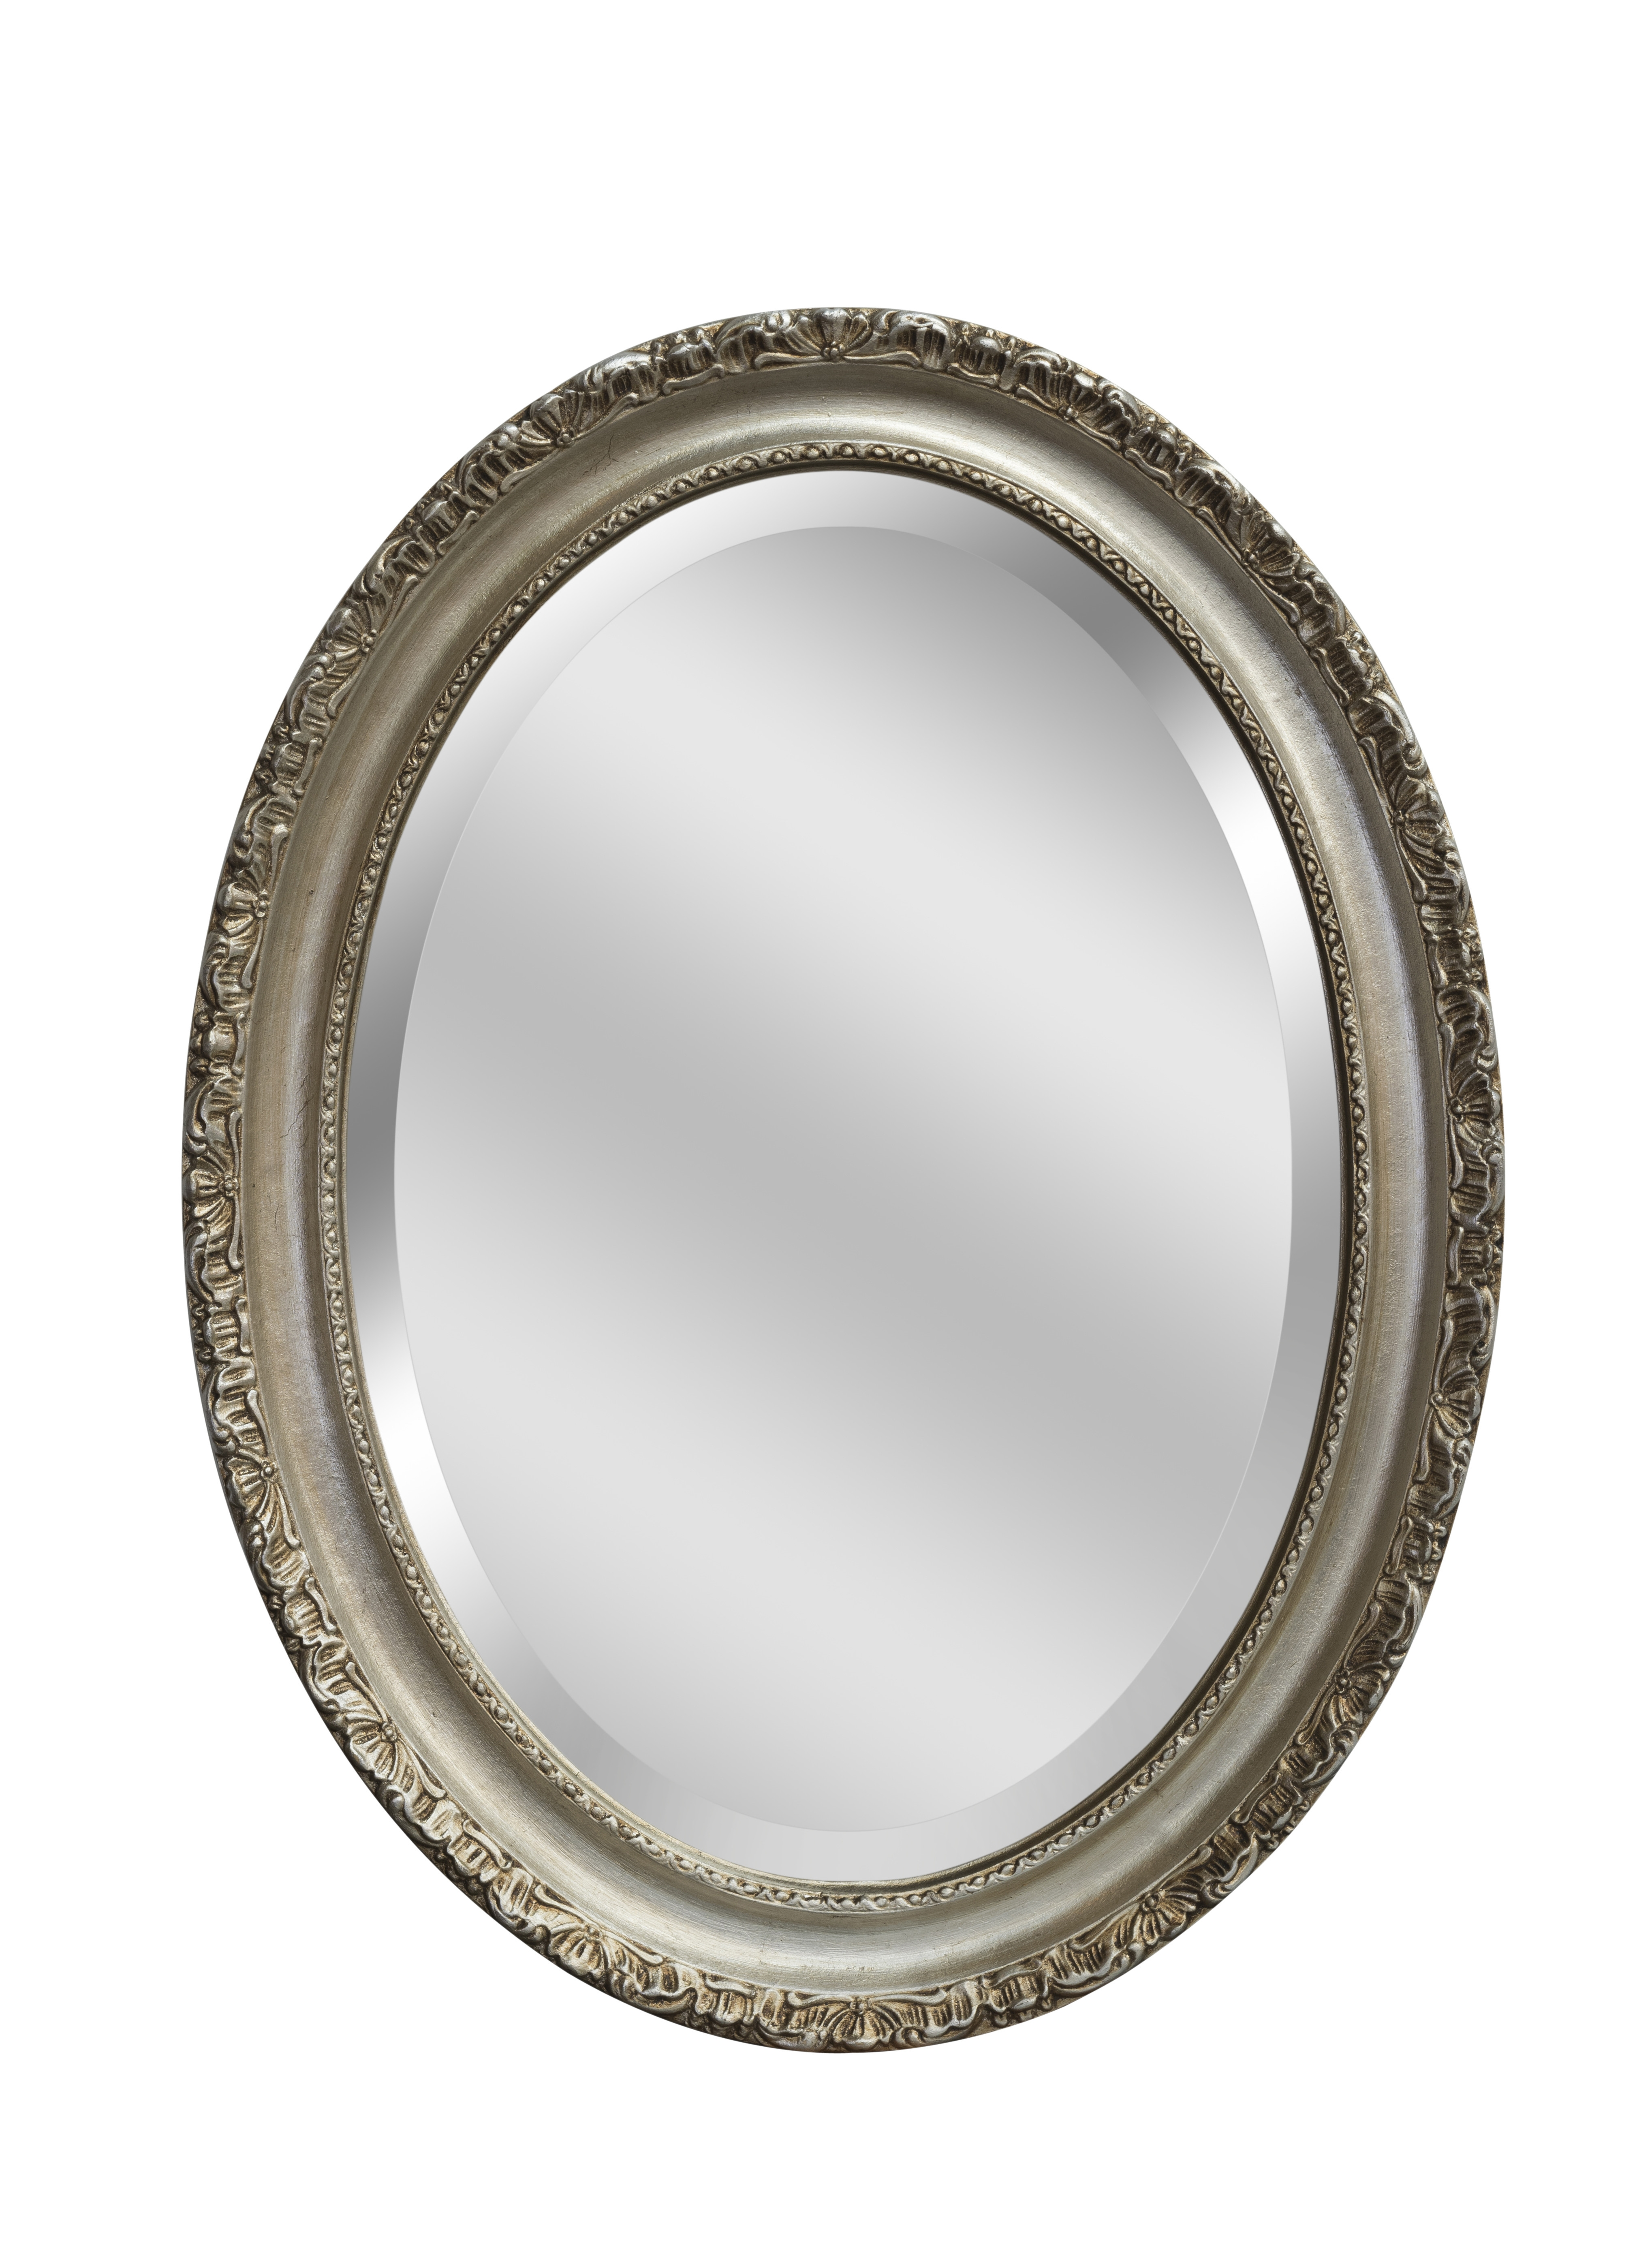 Silver Regency Oval Mirror Bedroom Mirrors For Sale Panfili Regarding Mirrors For Sale (Image 14 of 15)